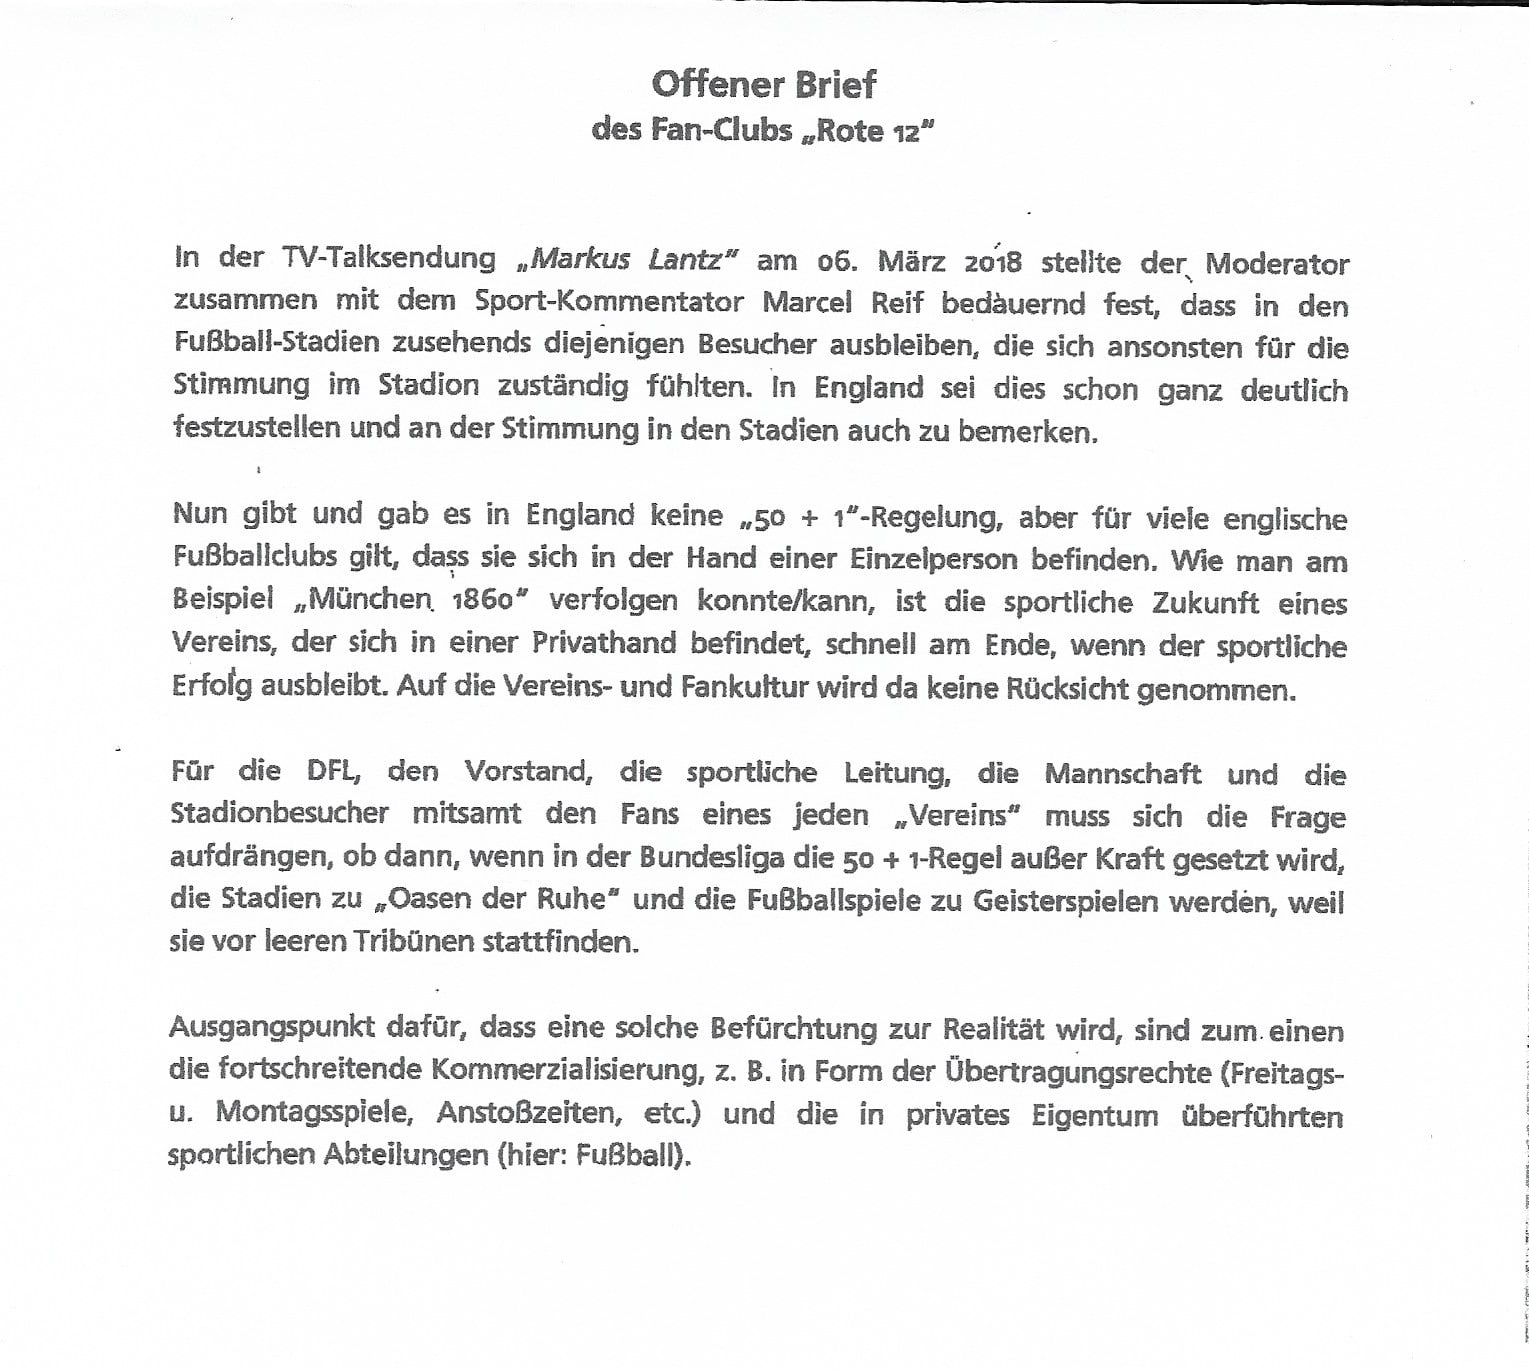 Offener Brief Rote 12